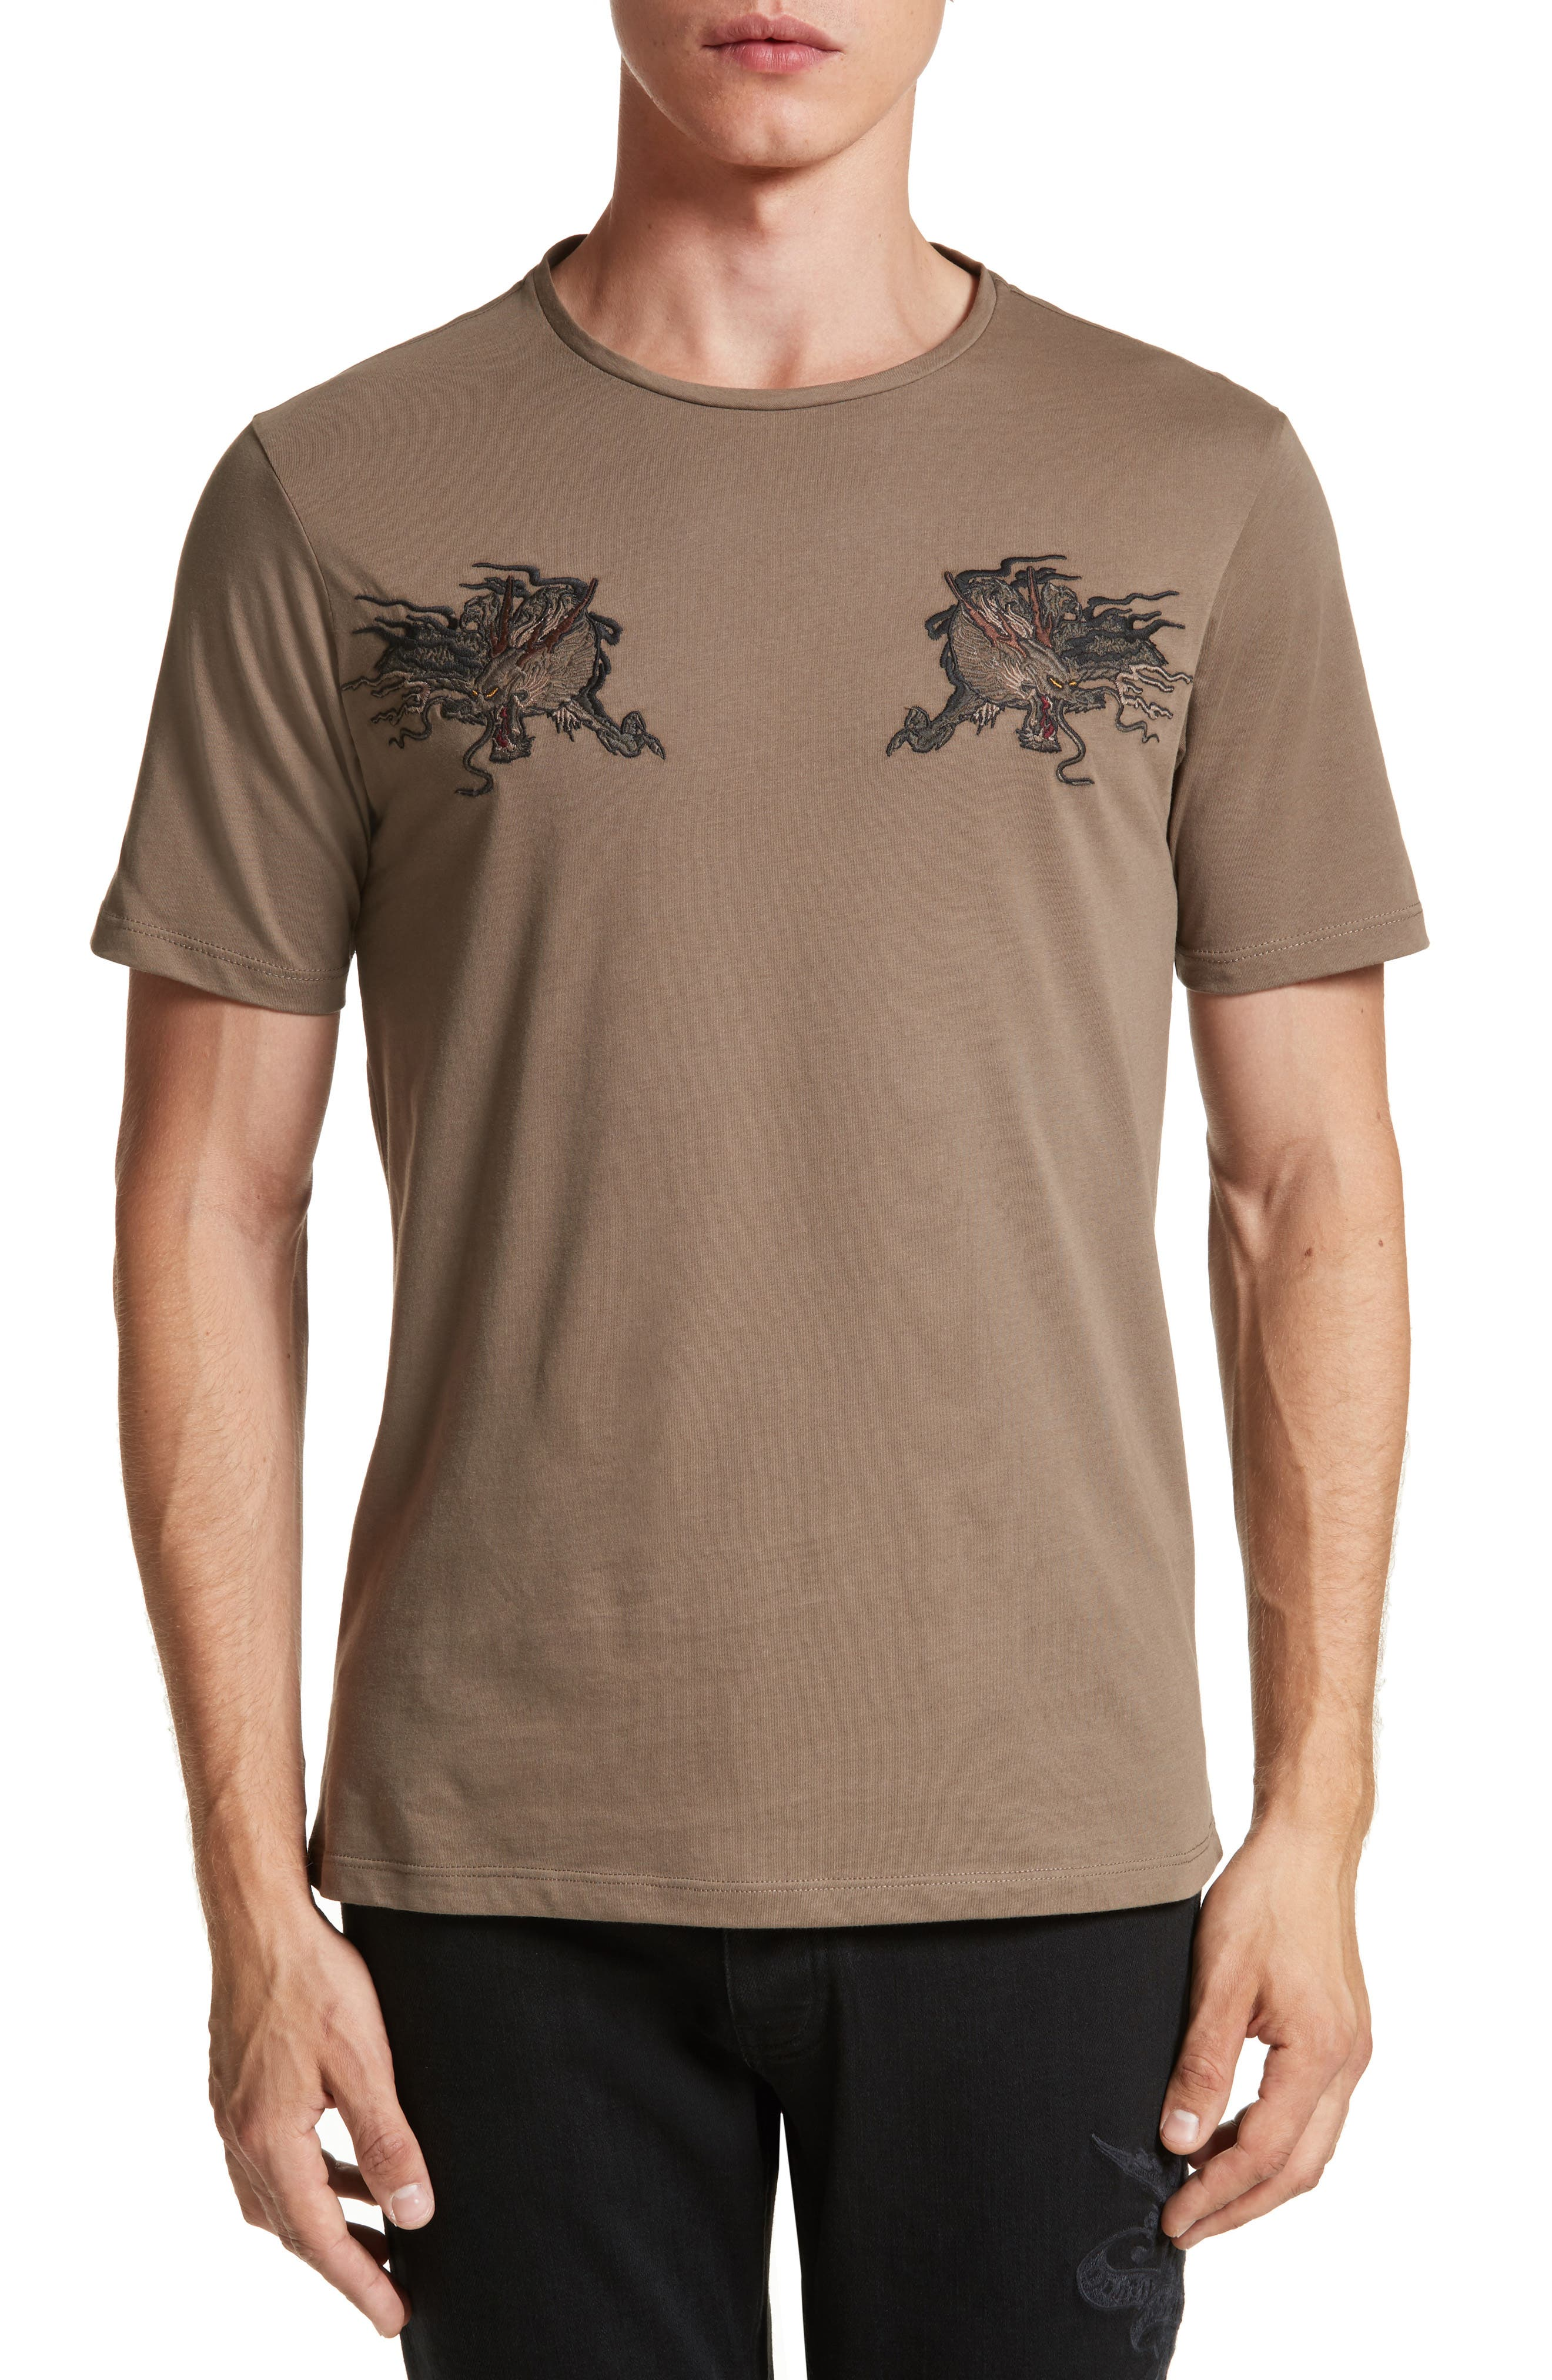 Main Image - The Kooples Embroidered Dragon T-Shirt